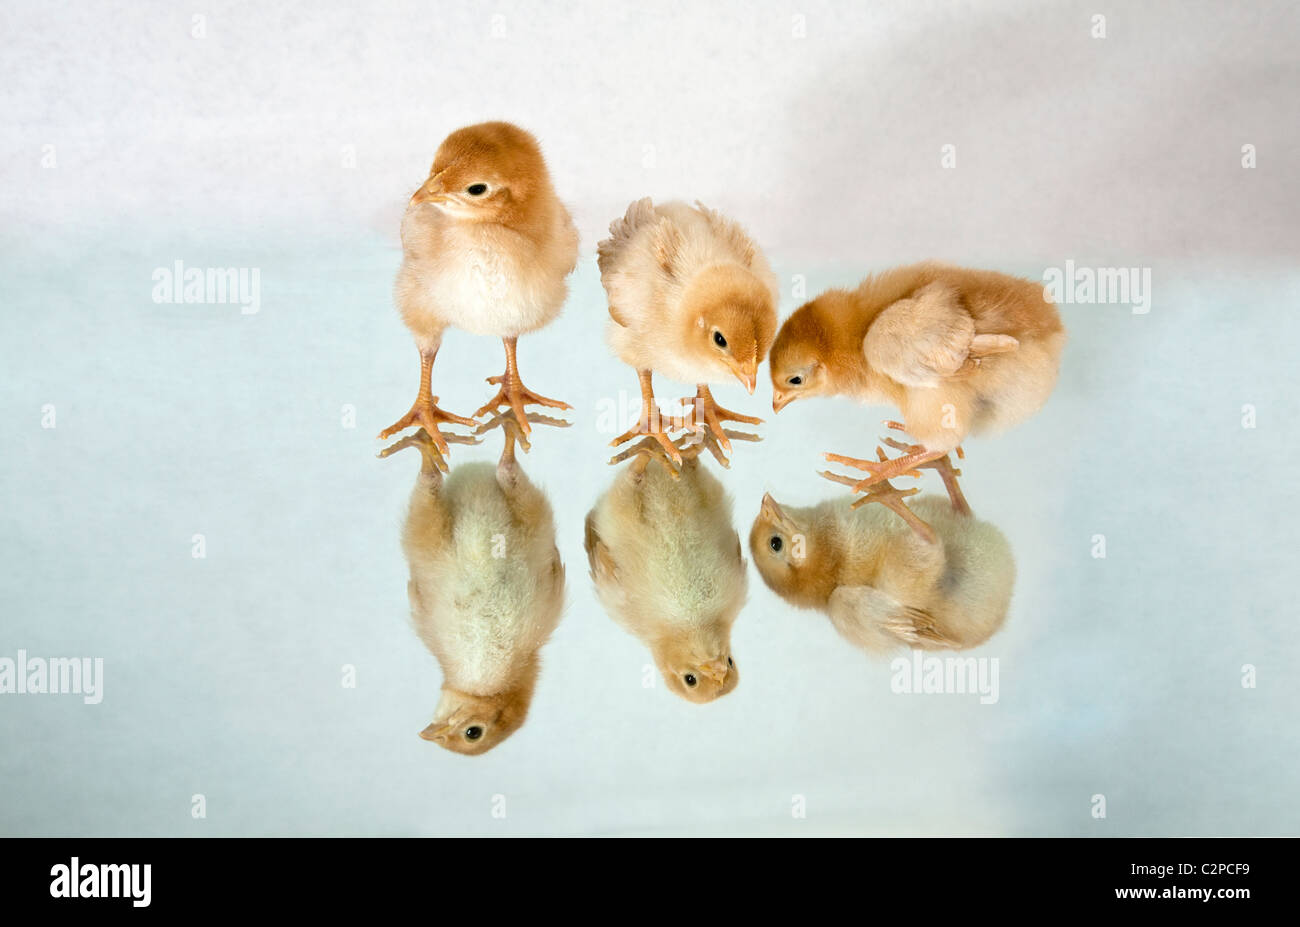 Baby sexlink chicks or chickens - Stock Image